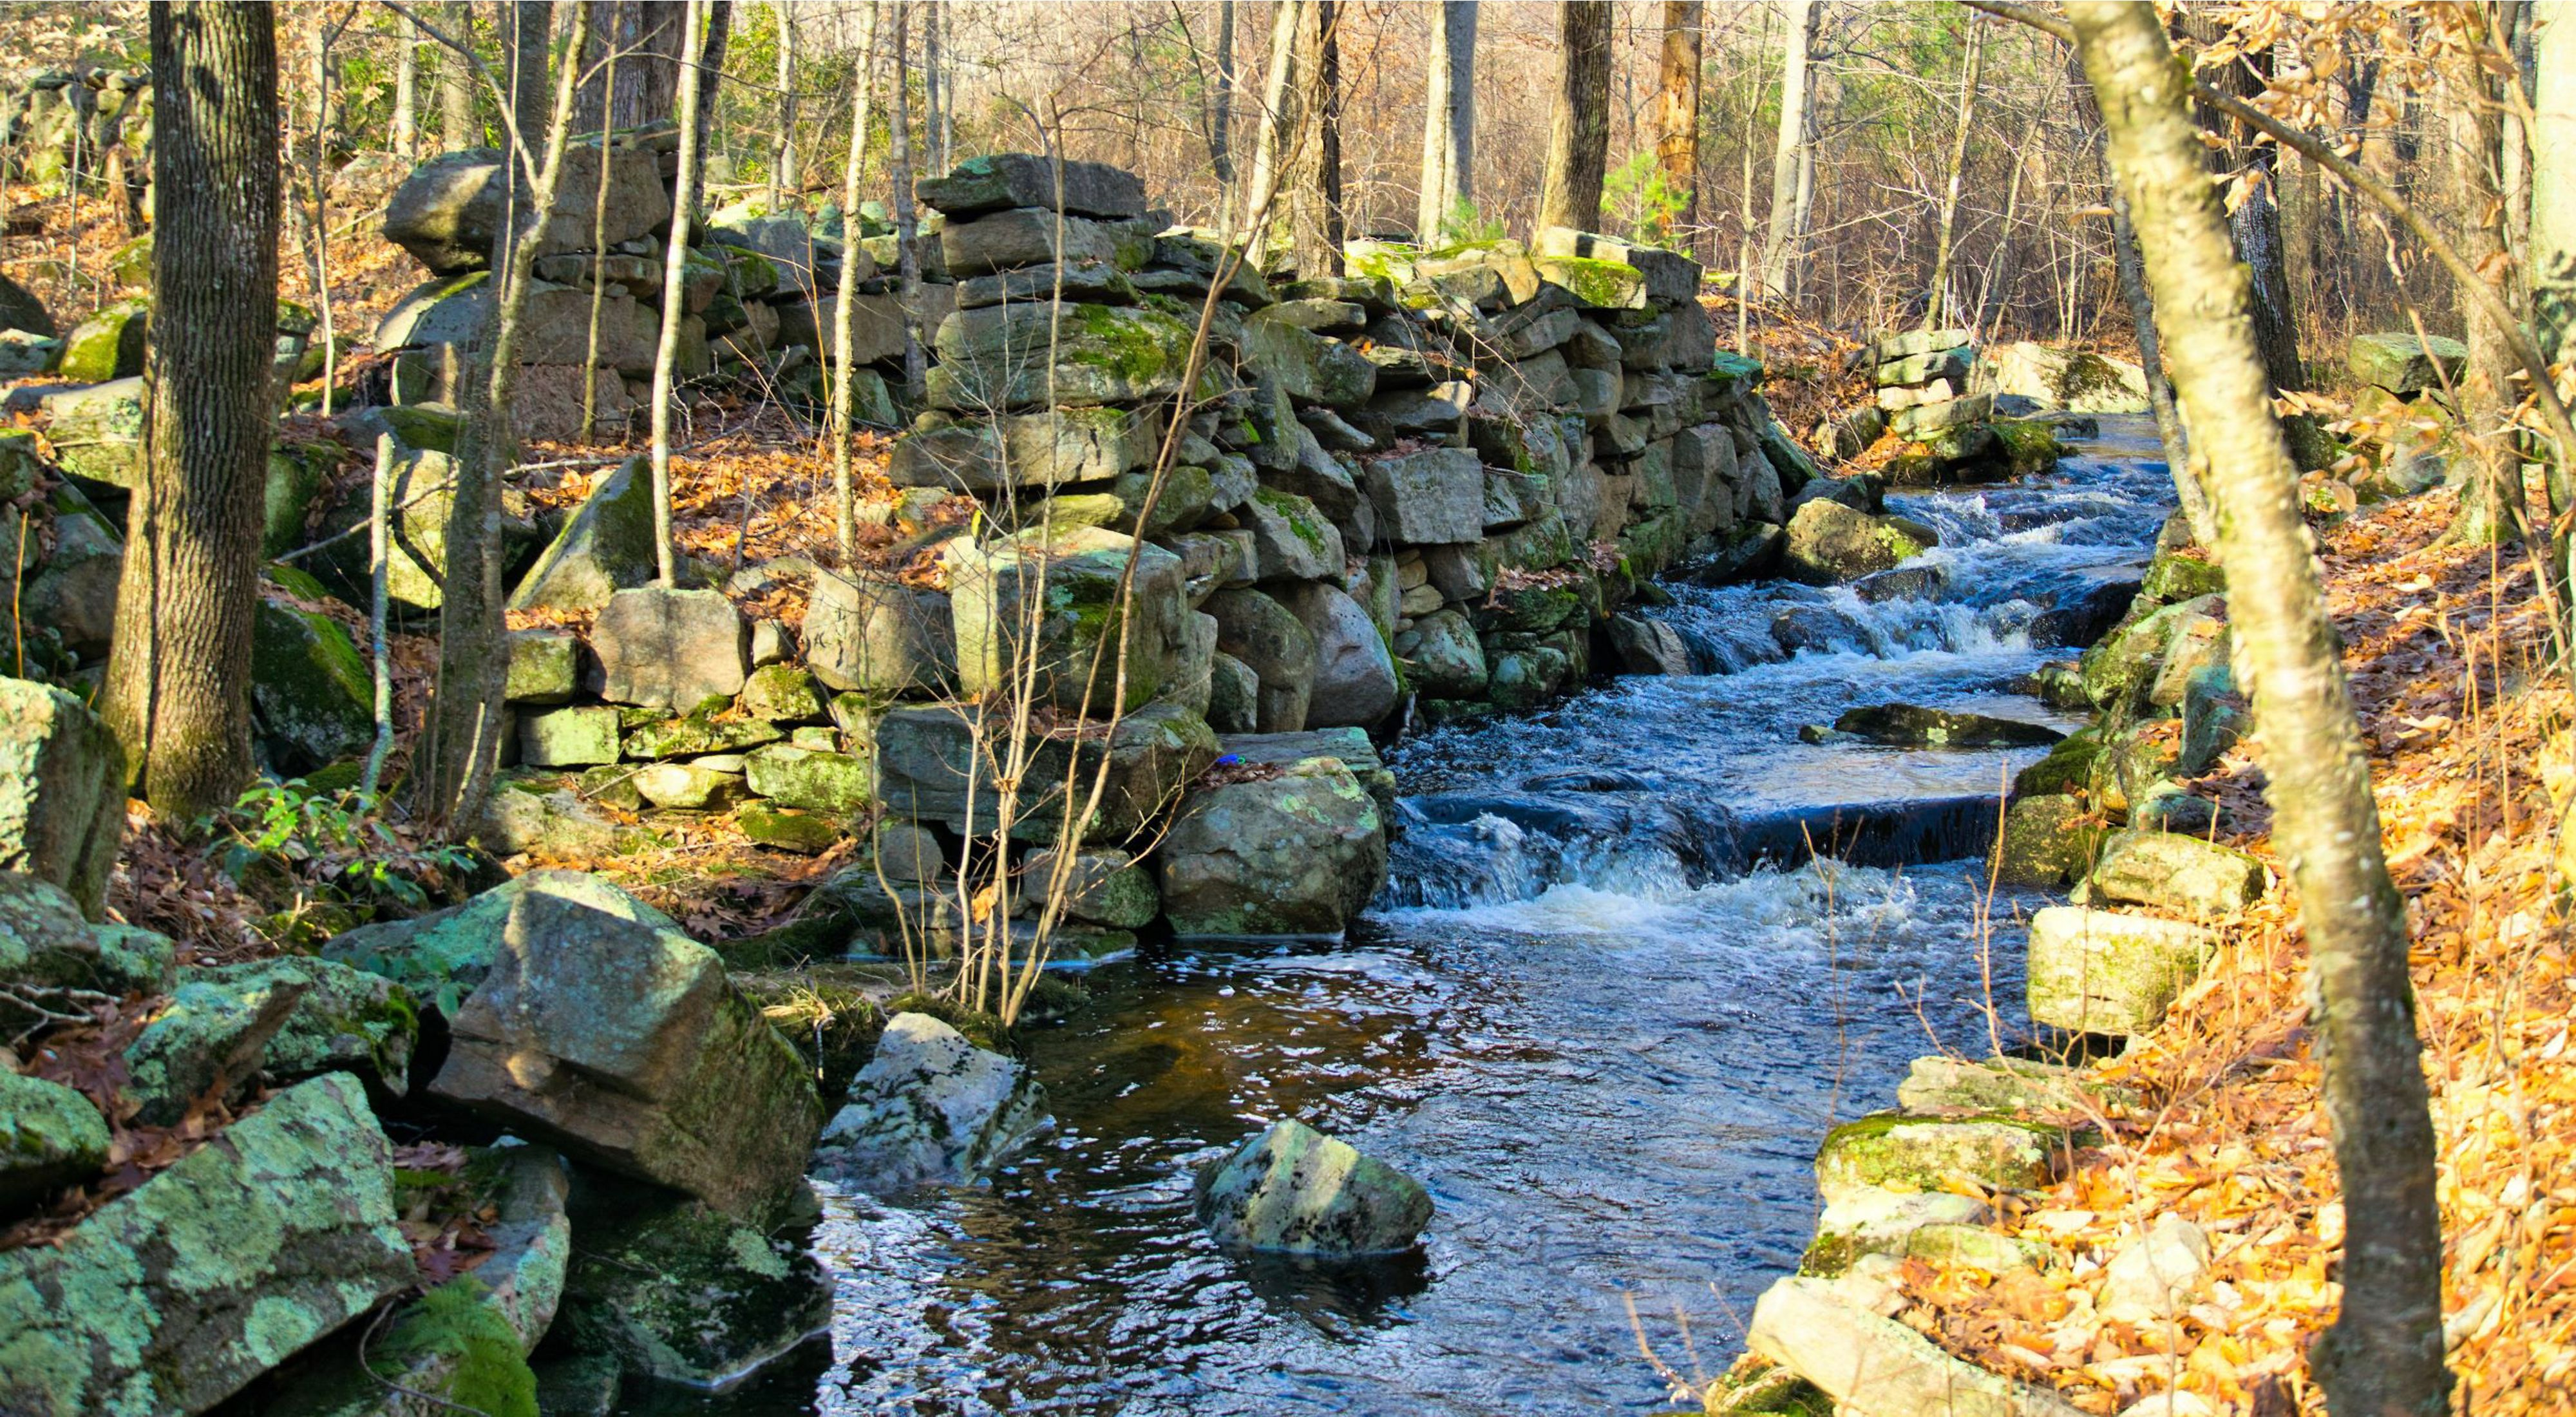 A small stream flows through the stone ruins of an old mill surrounded by forest.